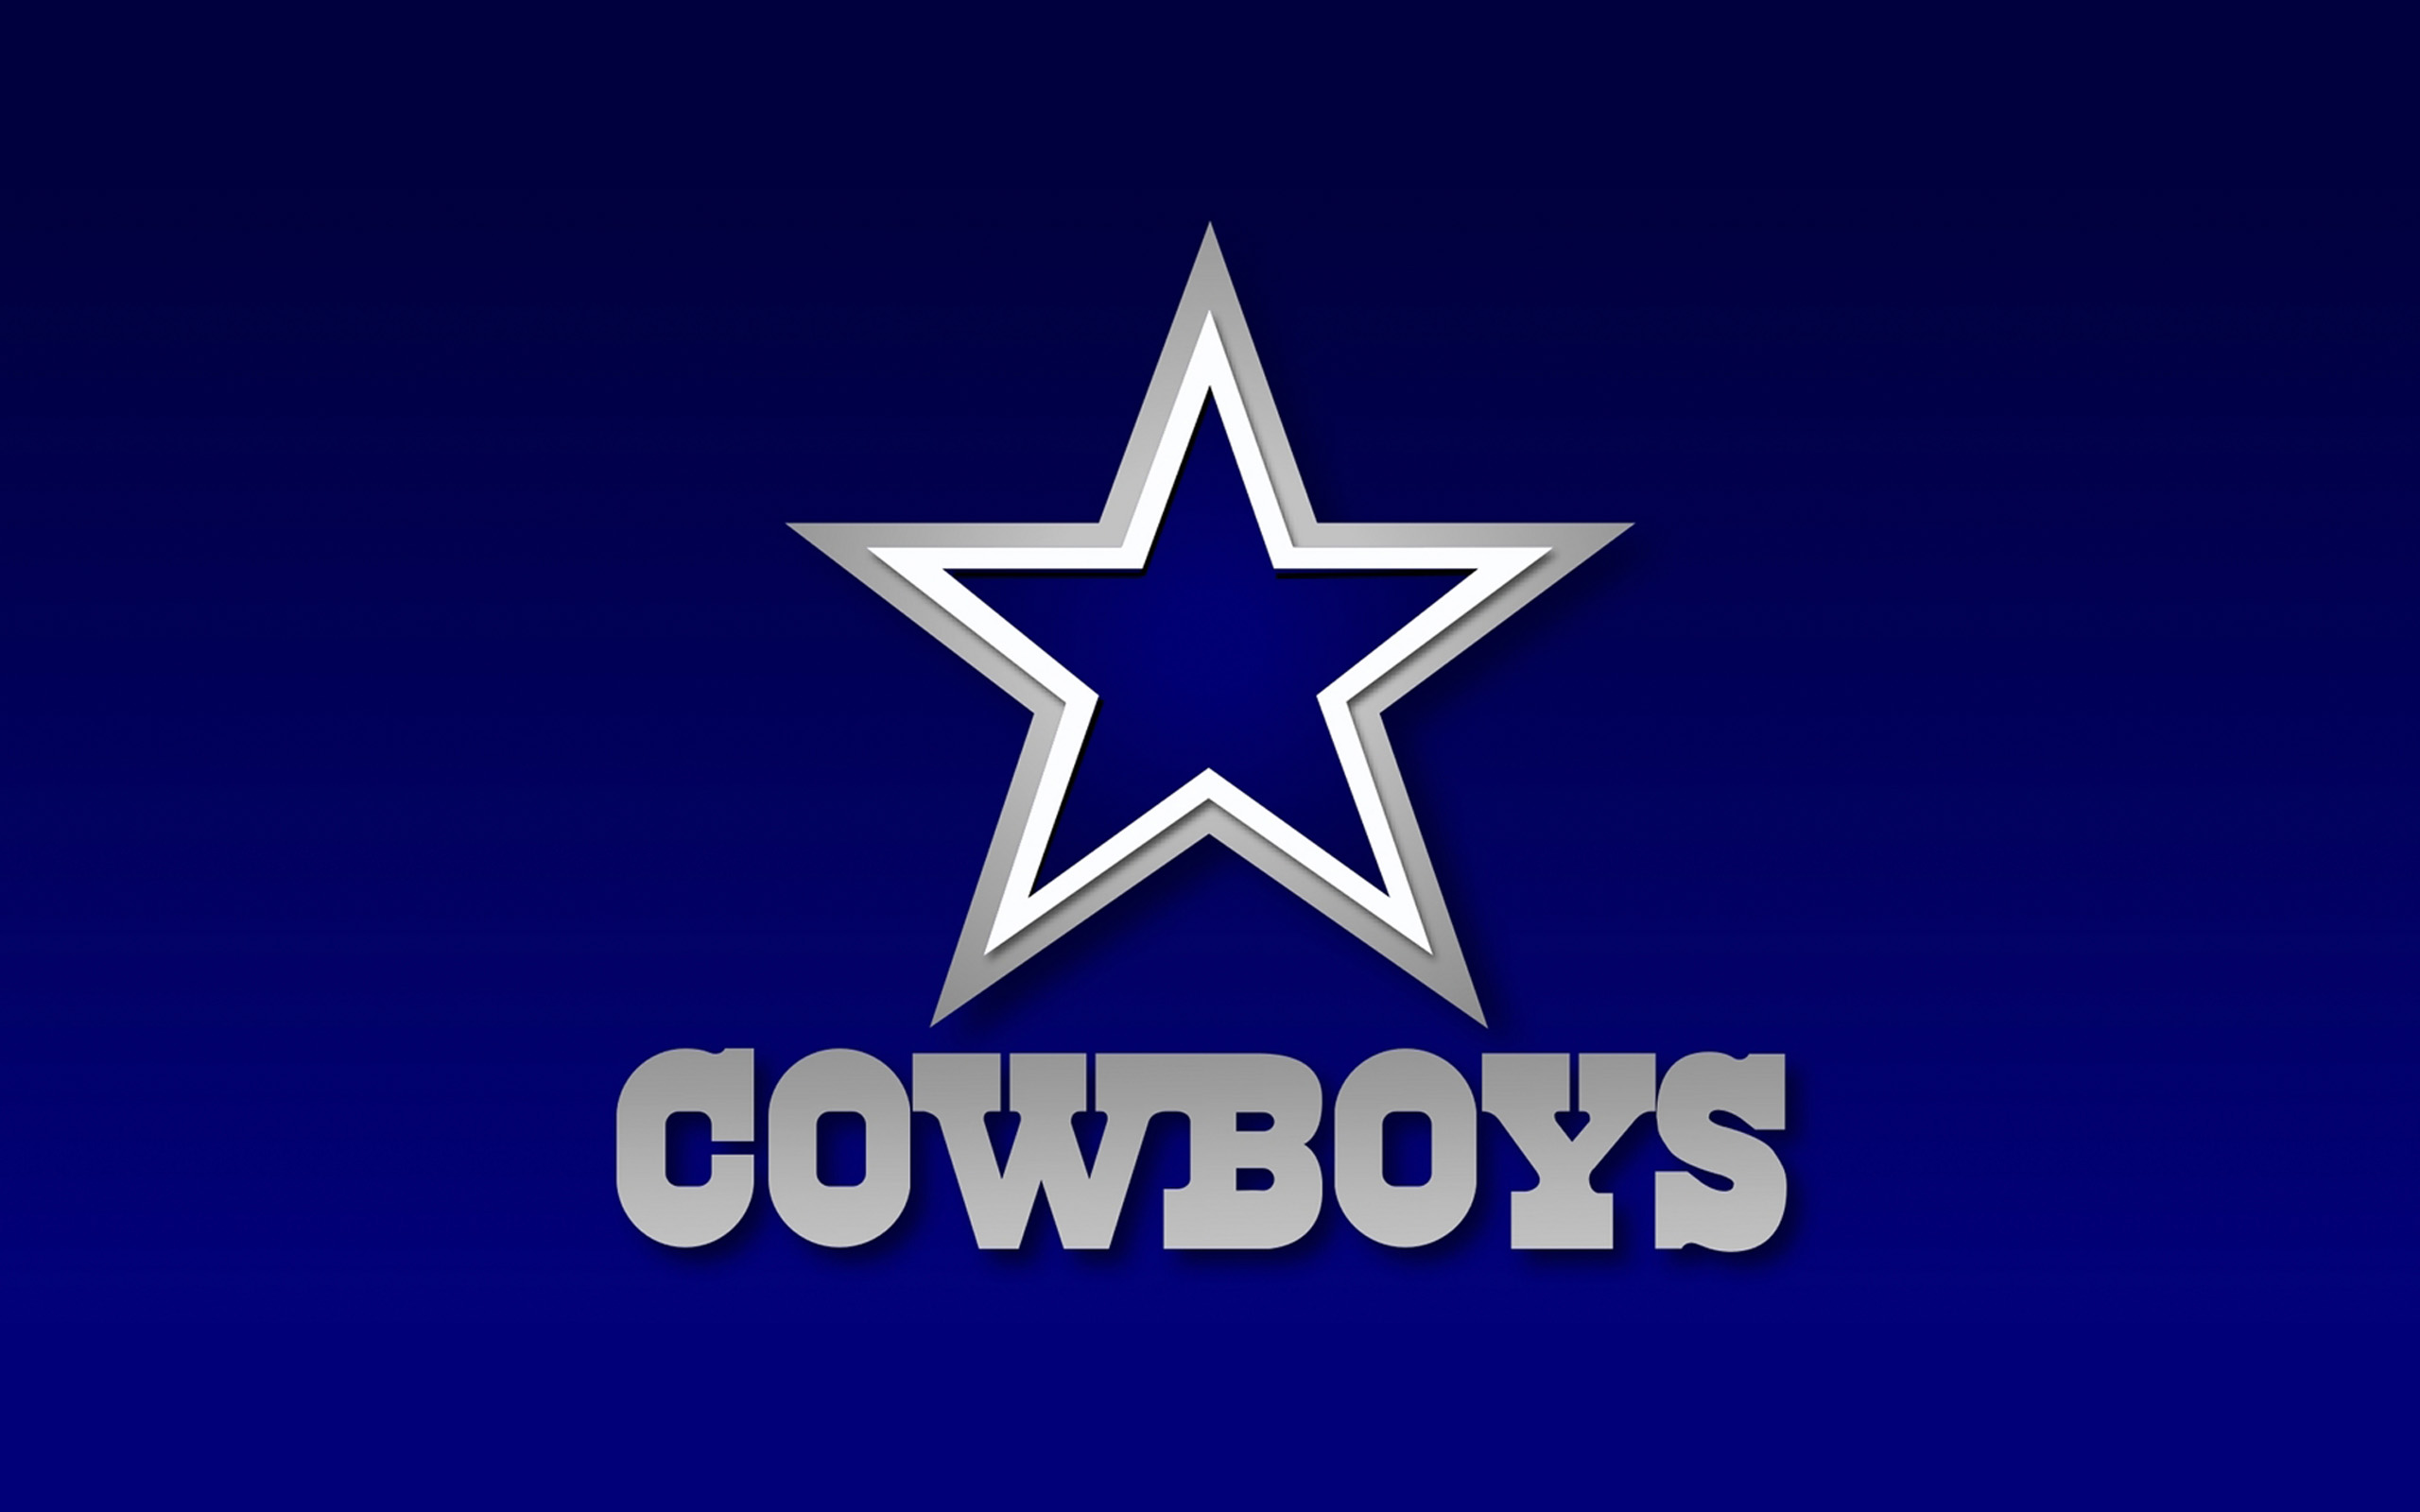 Dallas Cowboys Star Logo Wallpaper Danyalsak